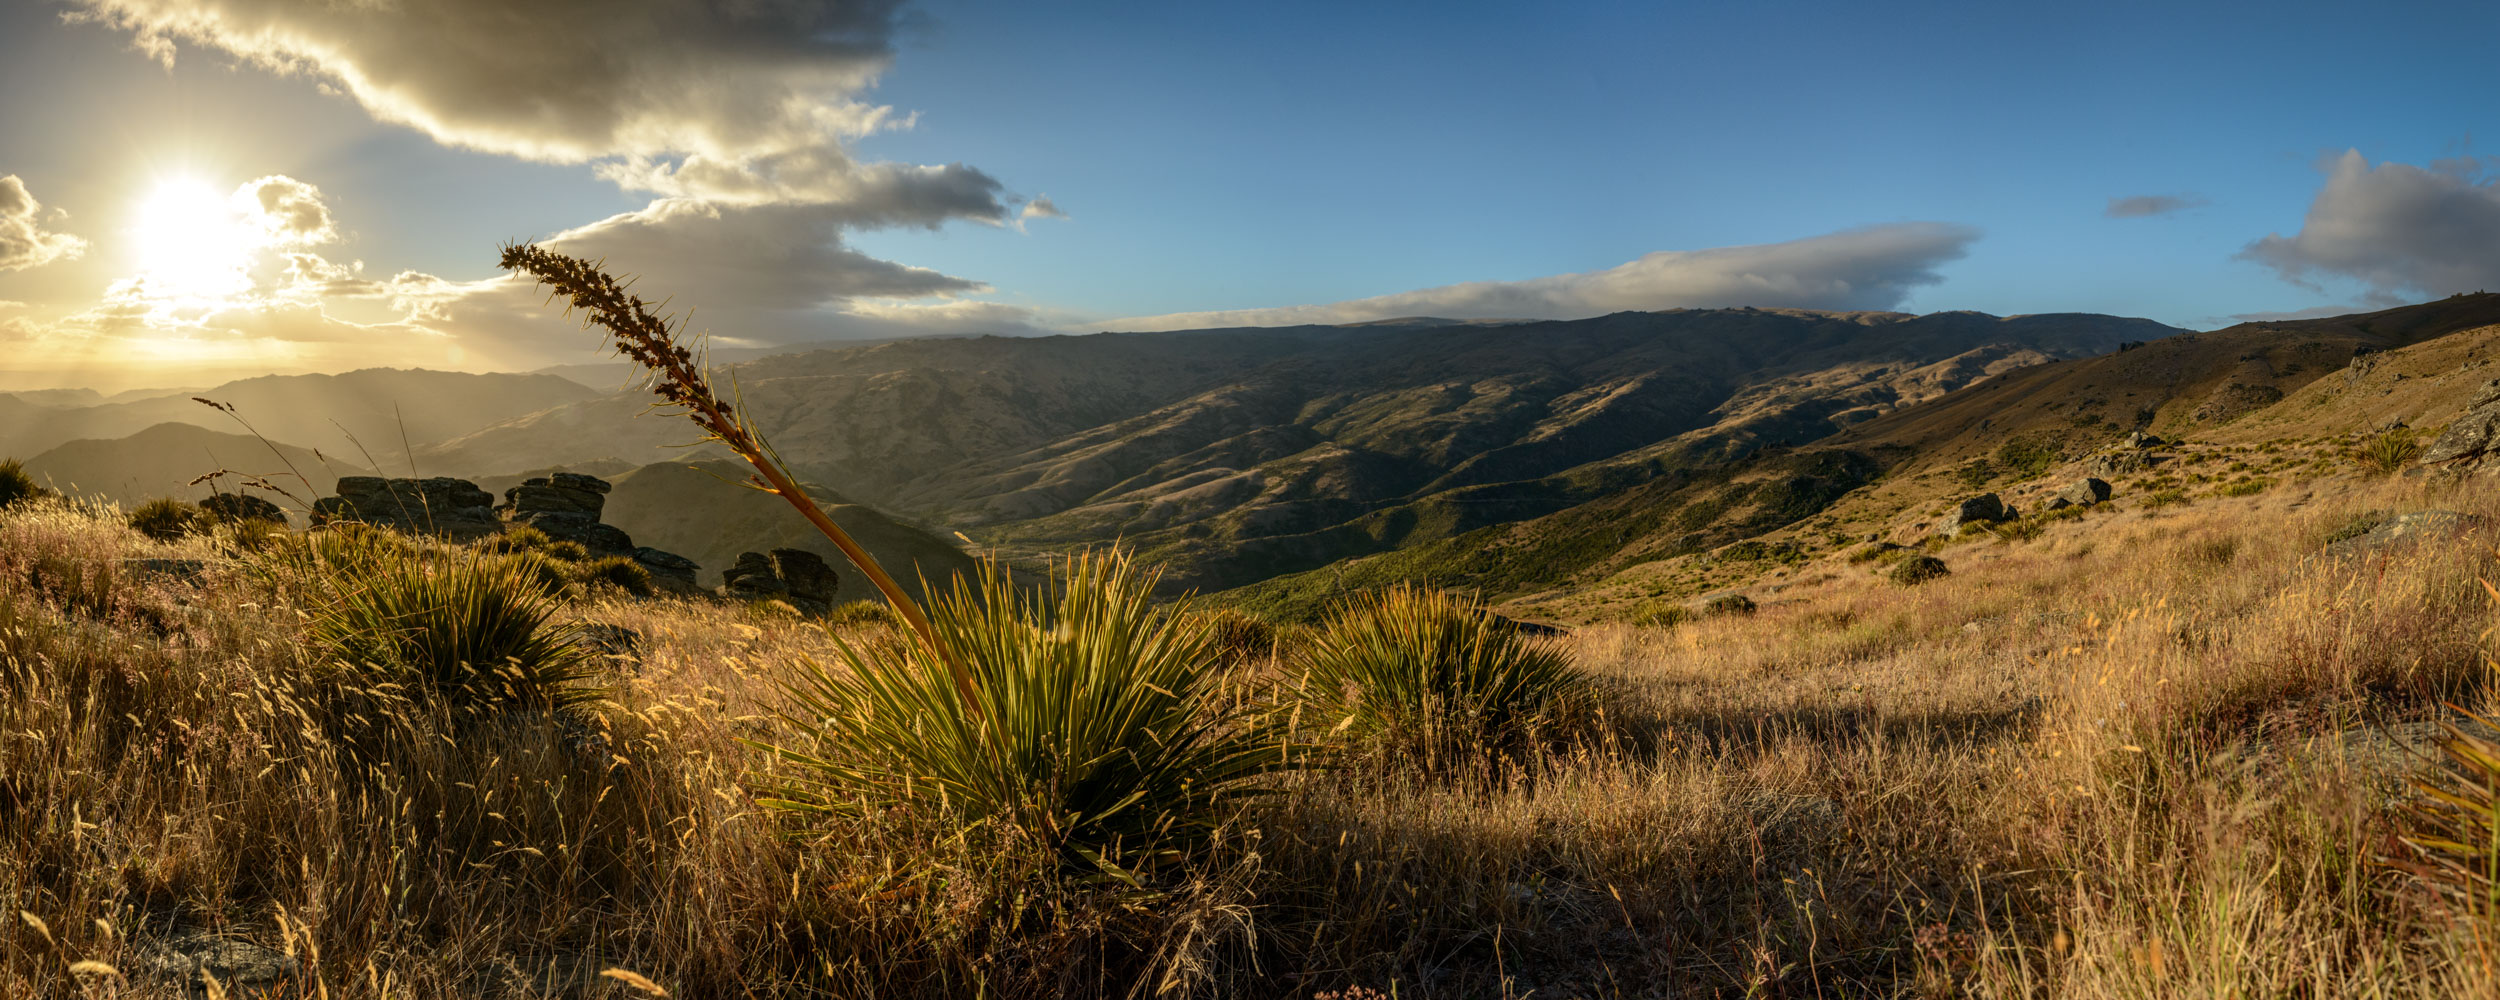 The sun rises over the spear grass covered hills of Central Otago